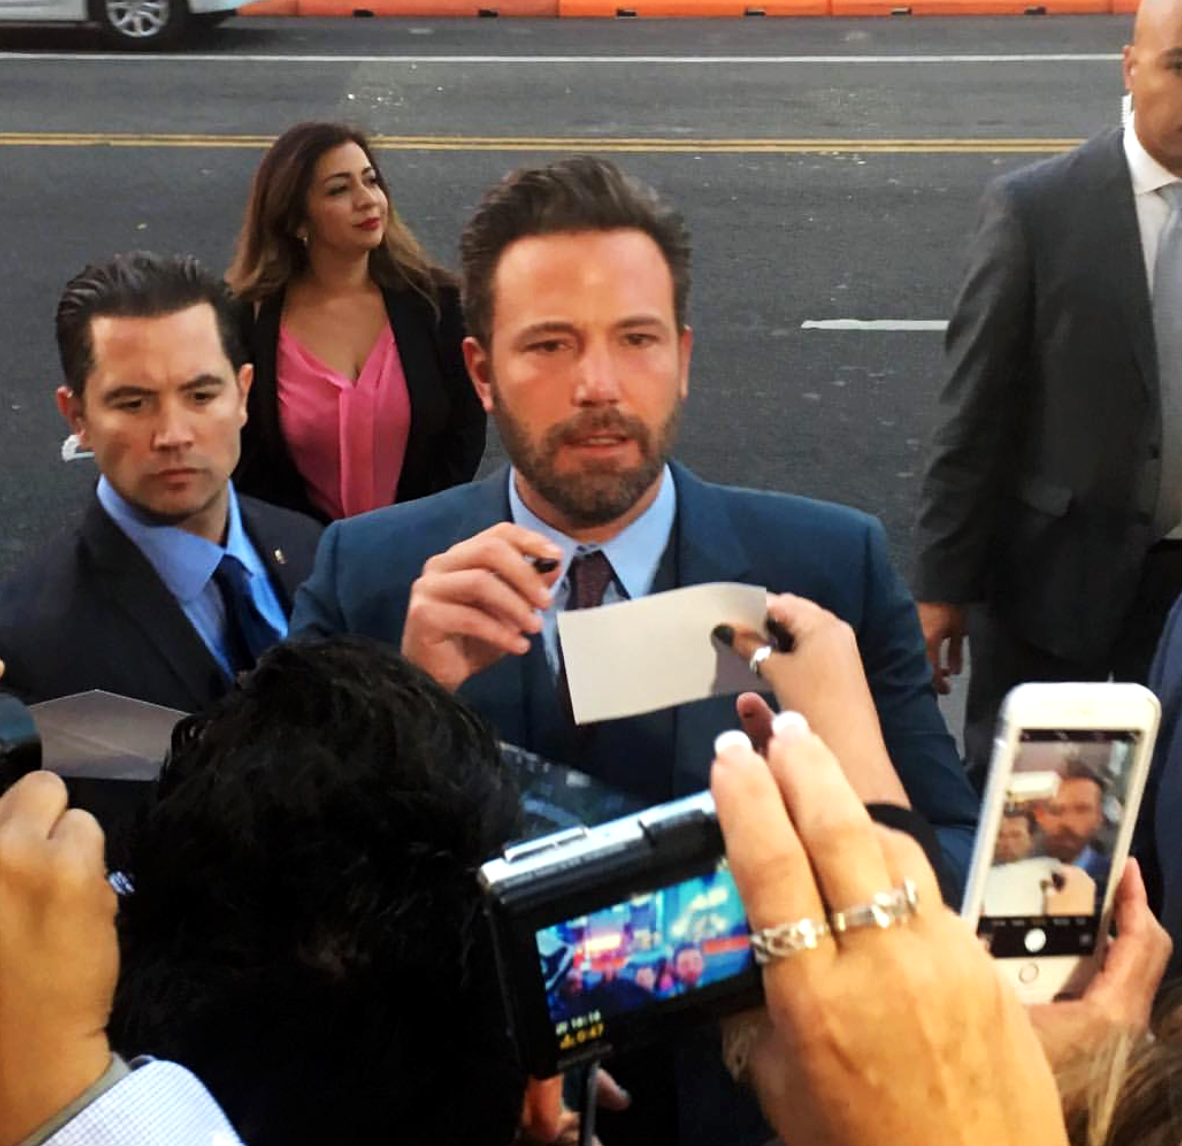 the-accountant-movie-premiere-hollywood-ben-affleck